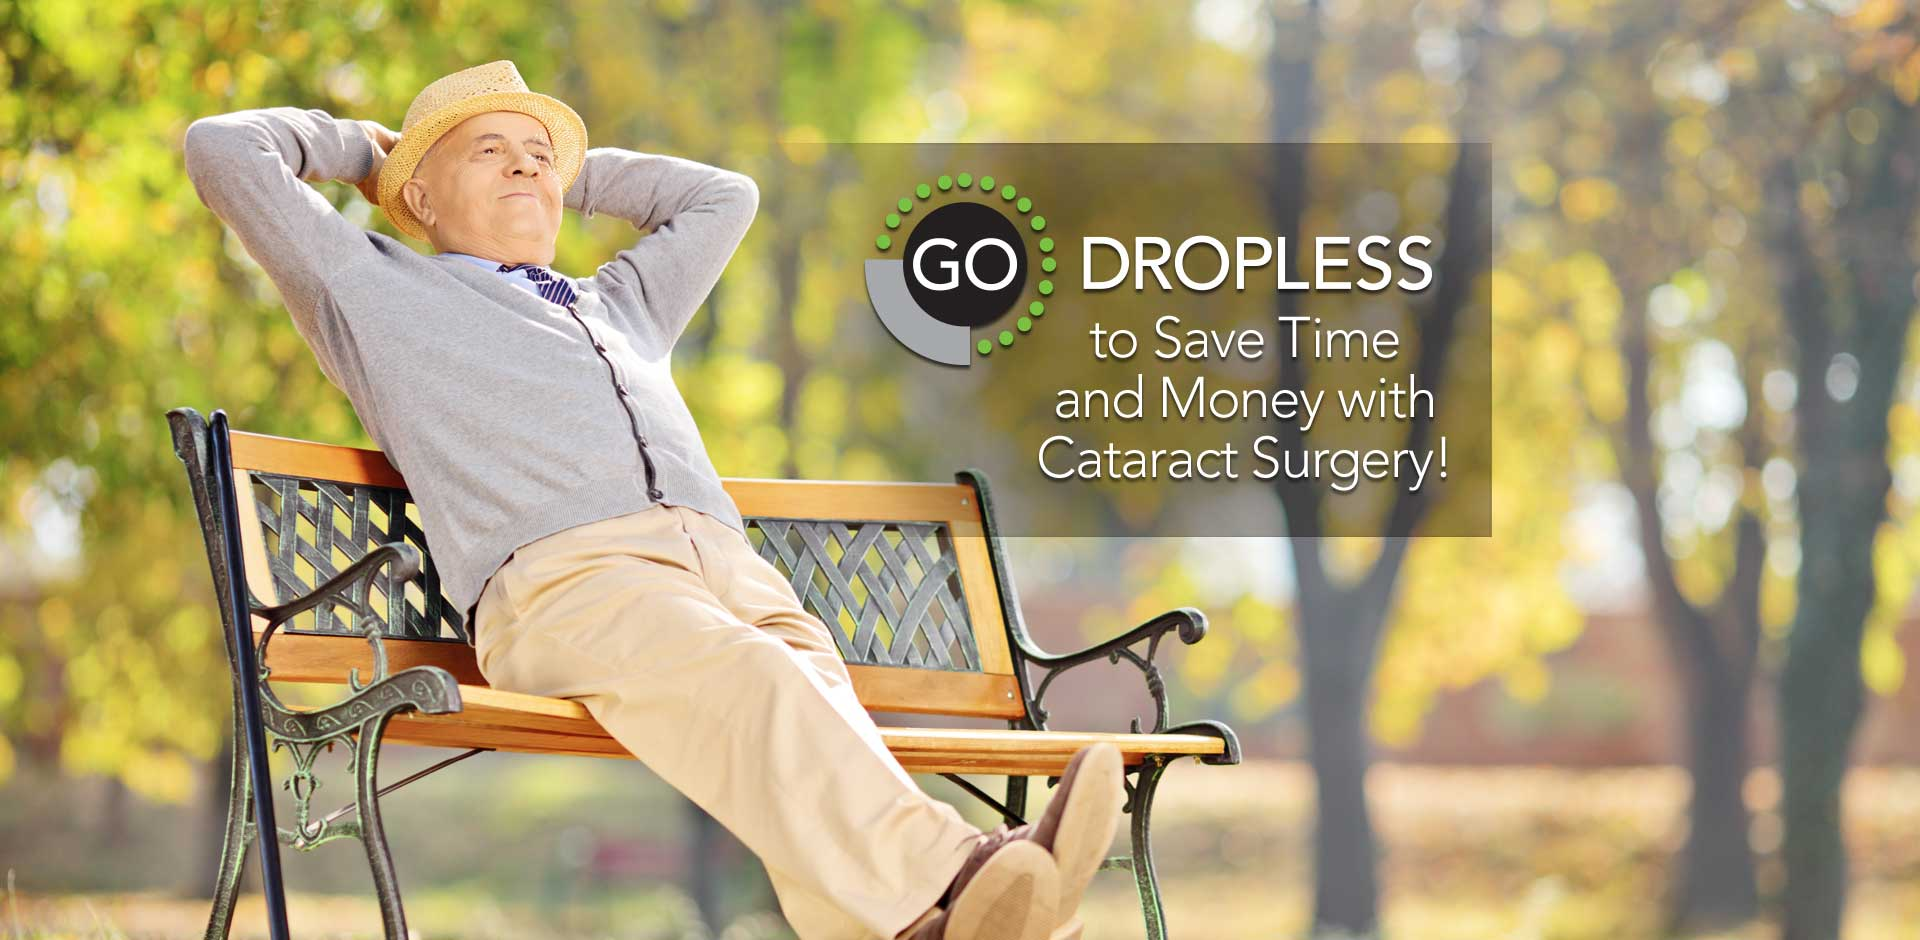 Dropless to Save Time and Money with Cataract Surgery